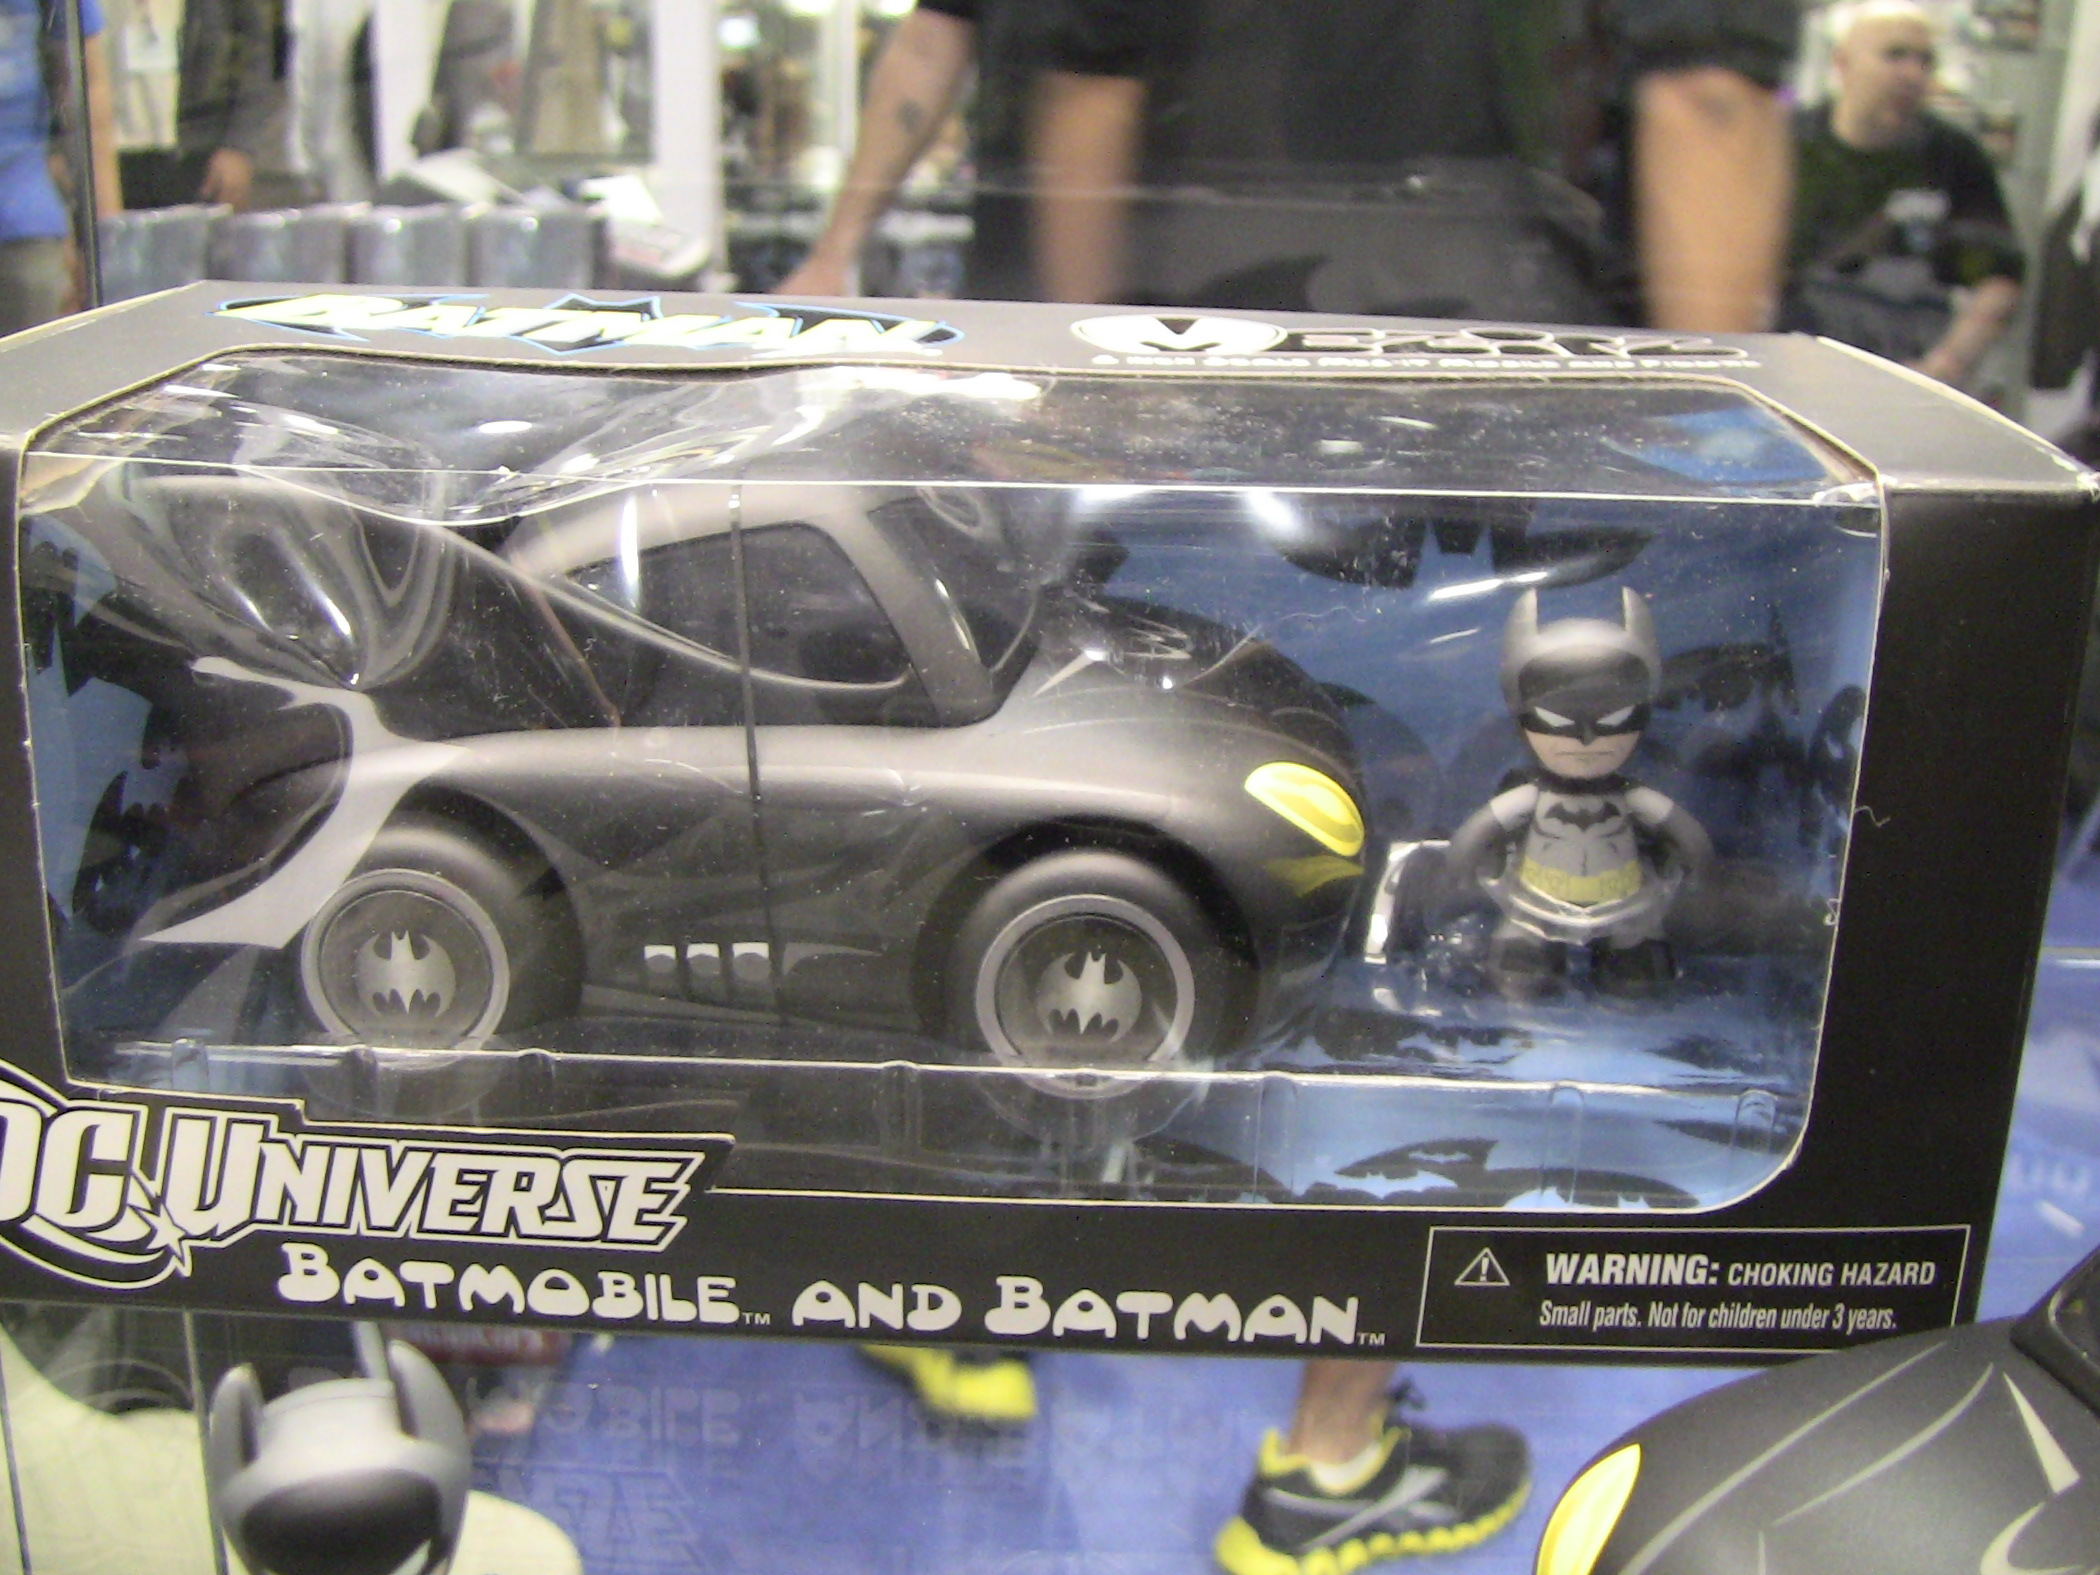 Mezco Batmobile Packaged